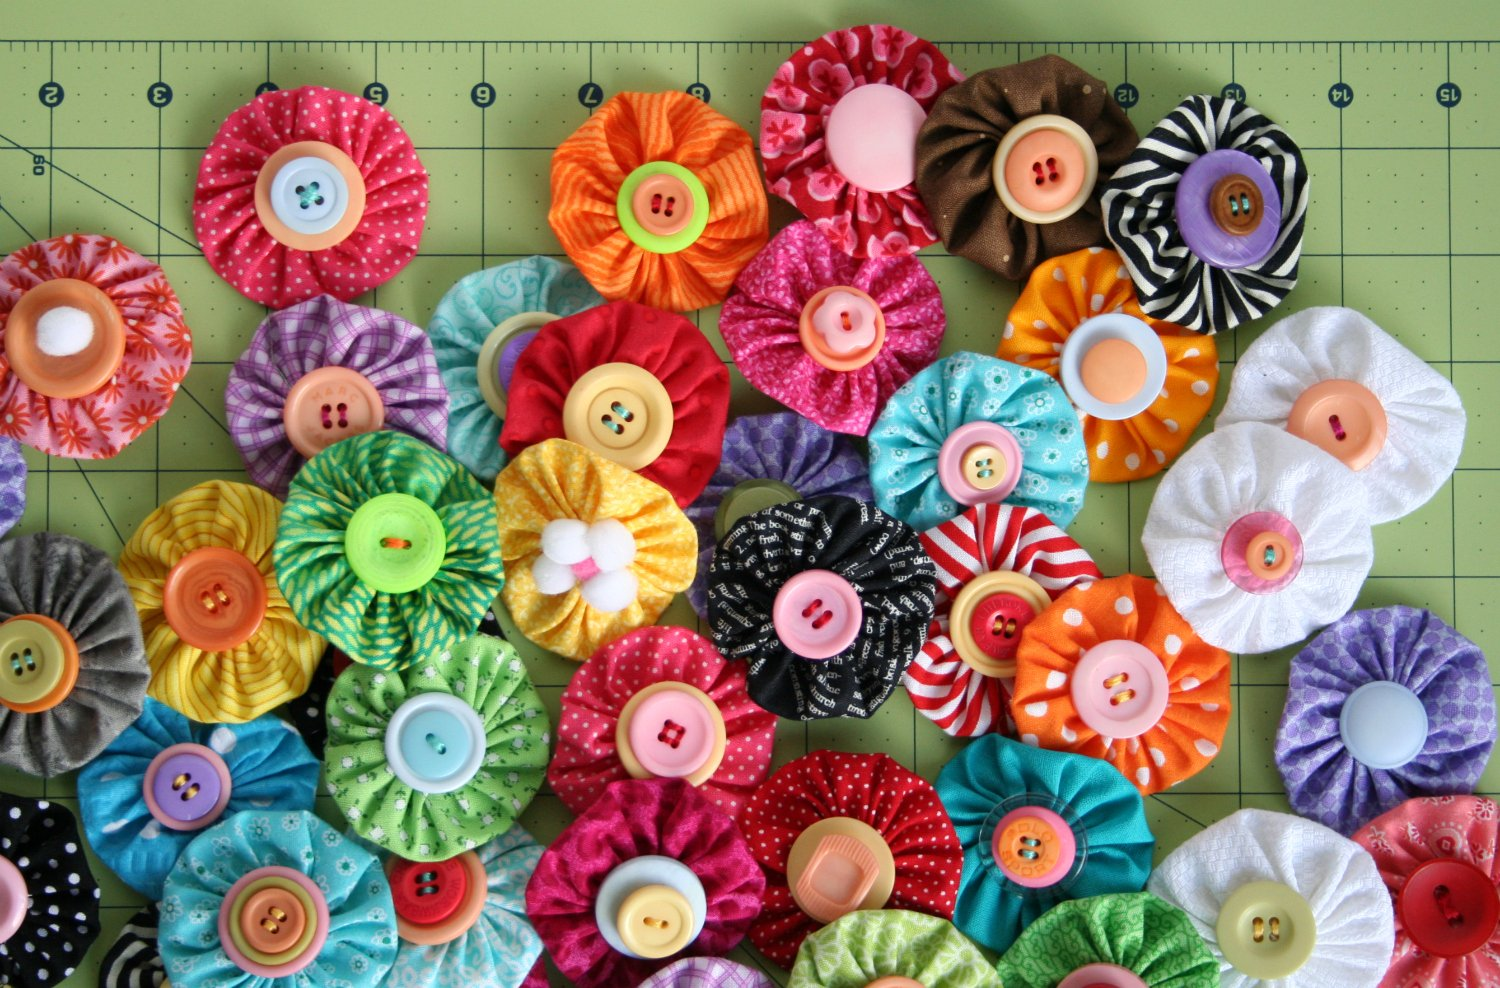 Scrapbook ideas recycled - Scrapbooking With Fabric Now Out Of Archive